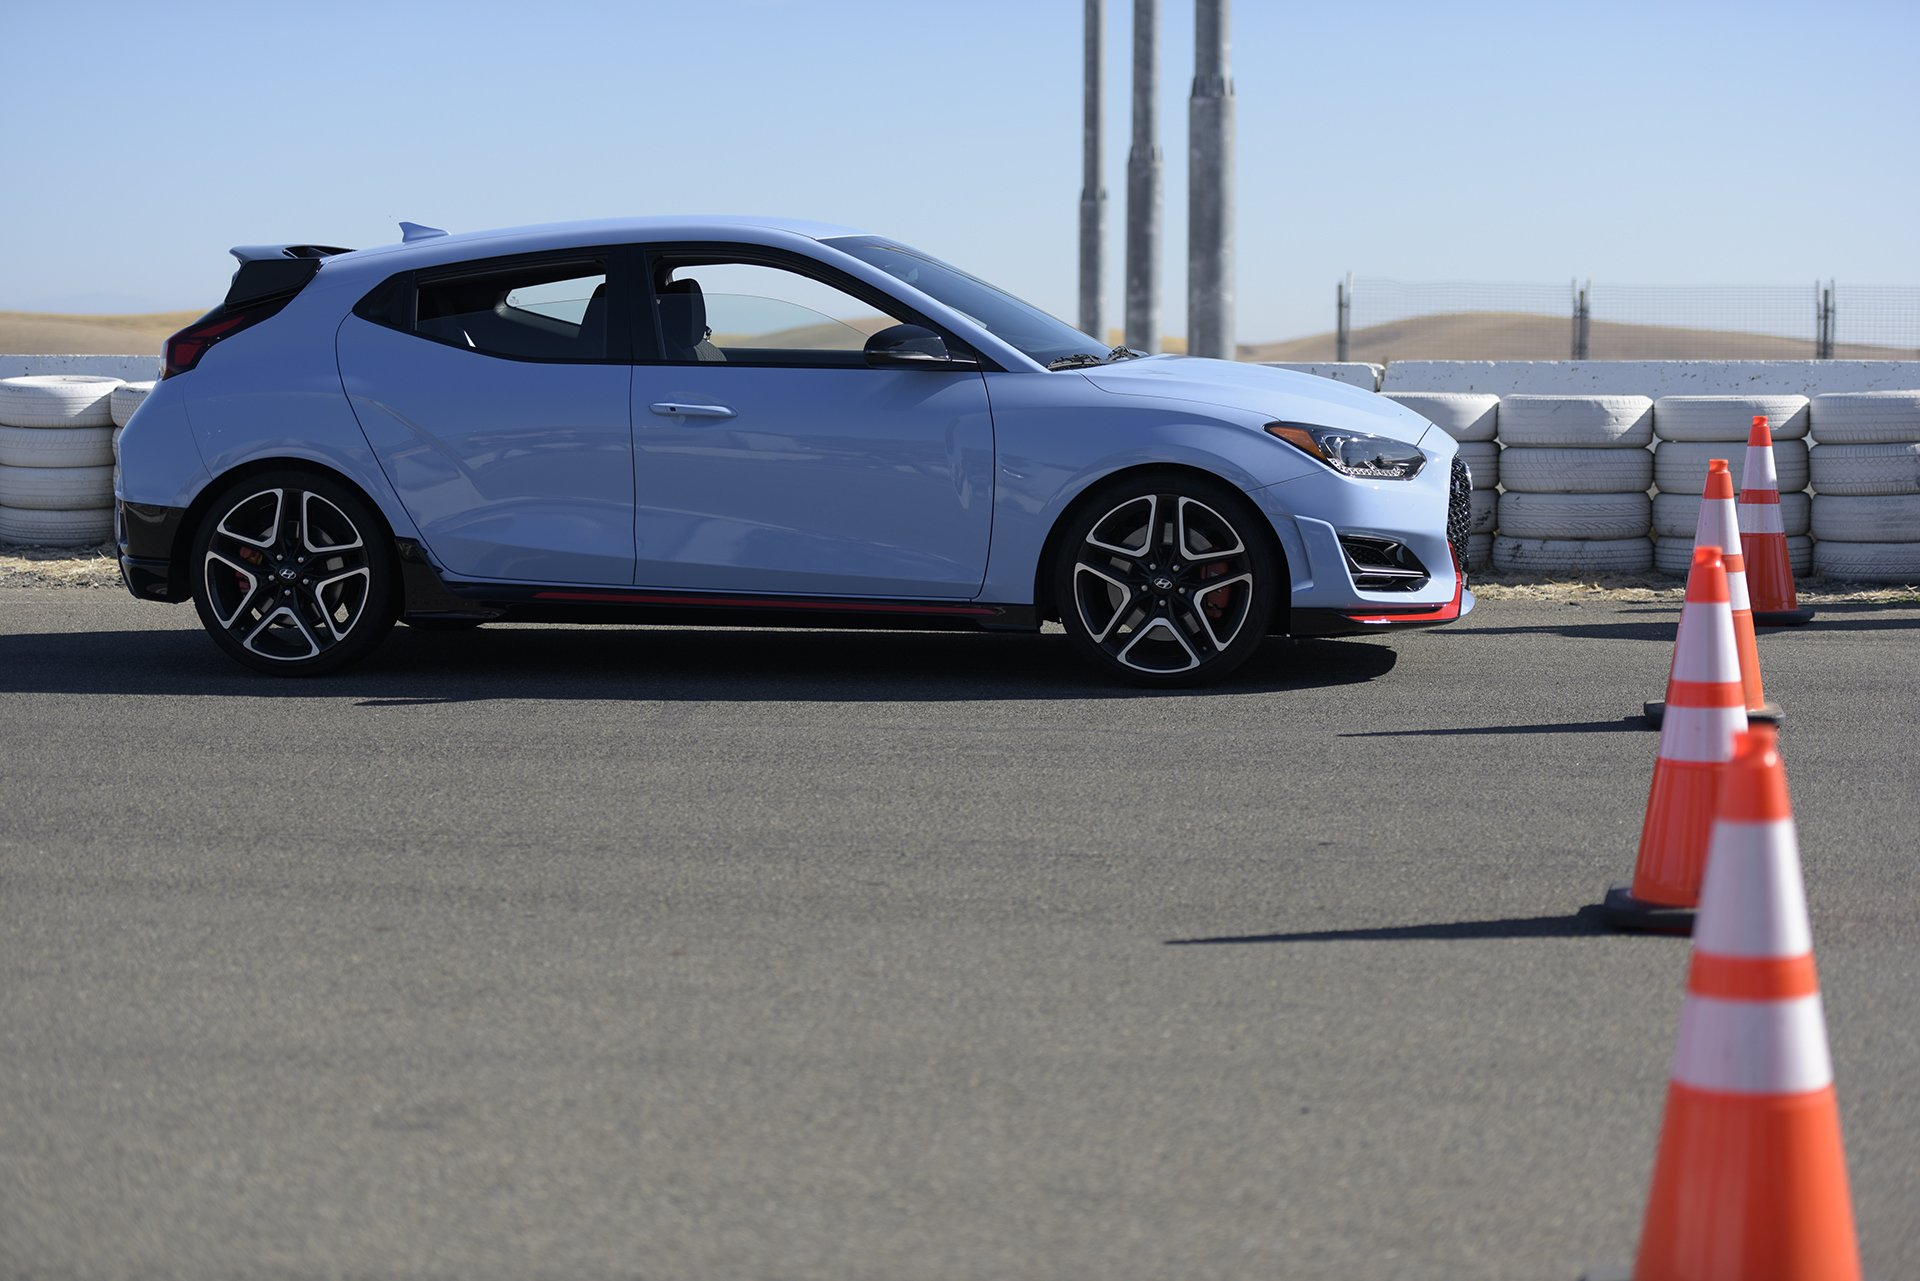 2019 Hyundai Veloster N First Drive Review: This Ain't No